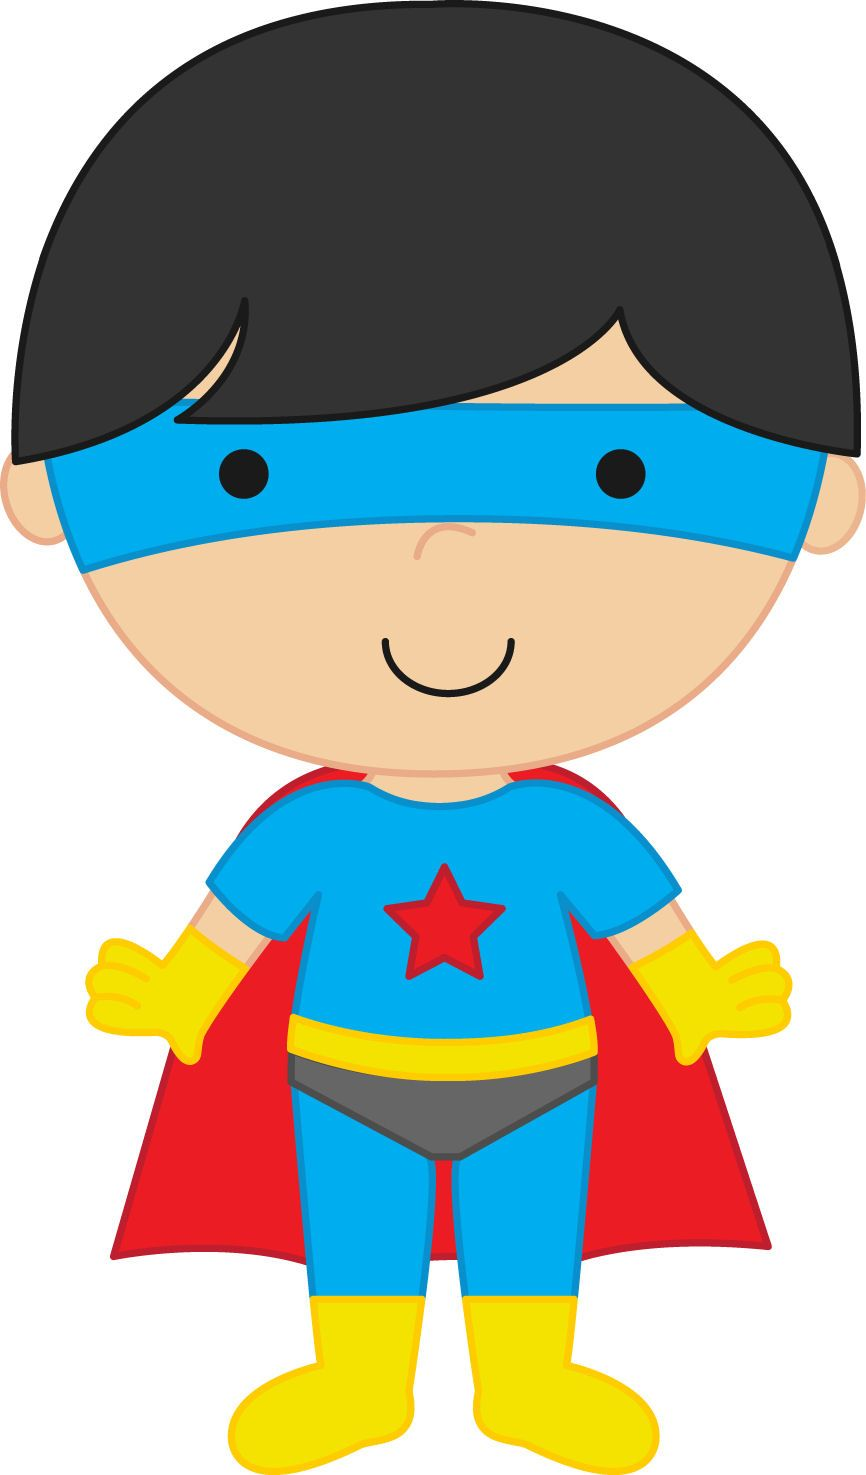 Pj Masks Clipart Free at GetDrawings com | Free for personal